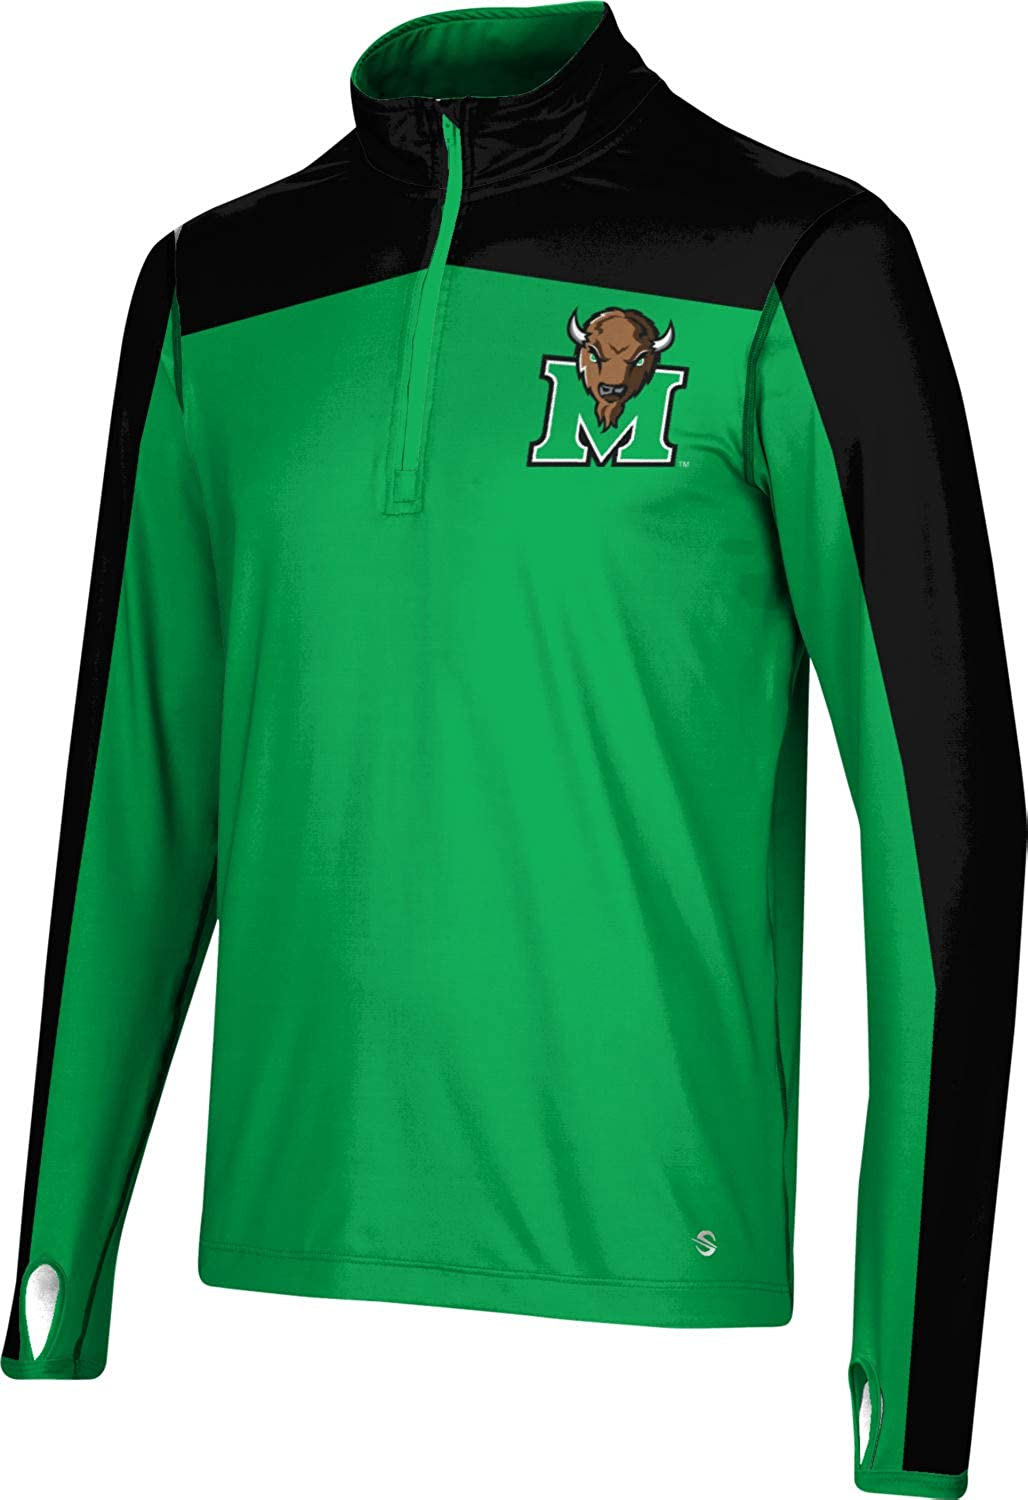 ProSphere Marshall University Clearance SALE! Limited time! Men's Quarter Zip Bombing free shipping Sh Sleeve Long -